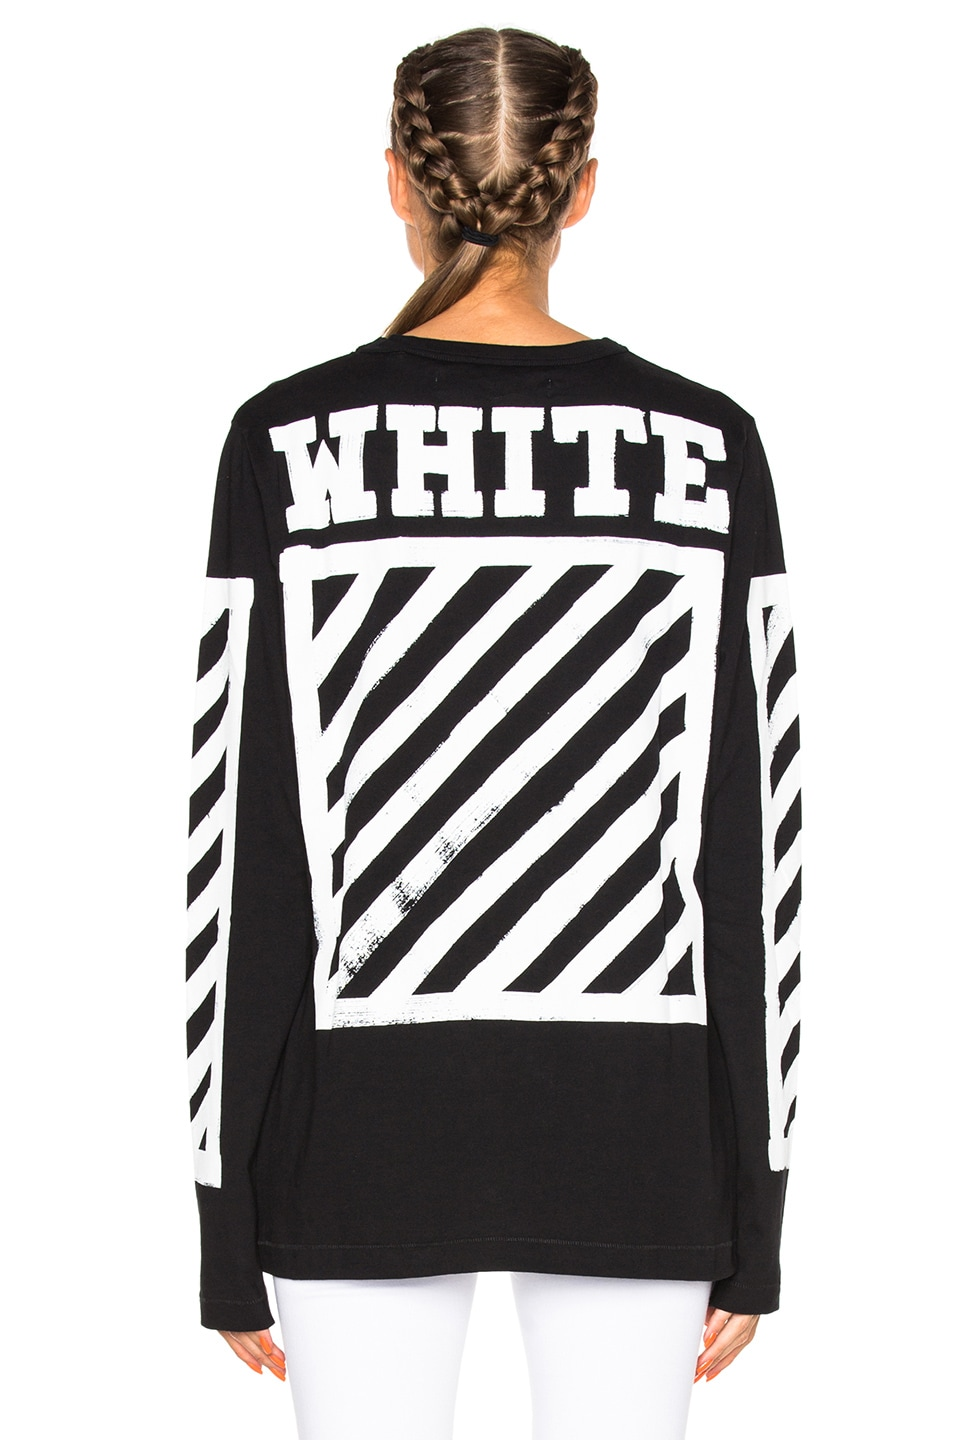 OFF-WHITE Brushed Diagonals Long Sleeve Tee in Black | FWRD